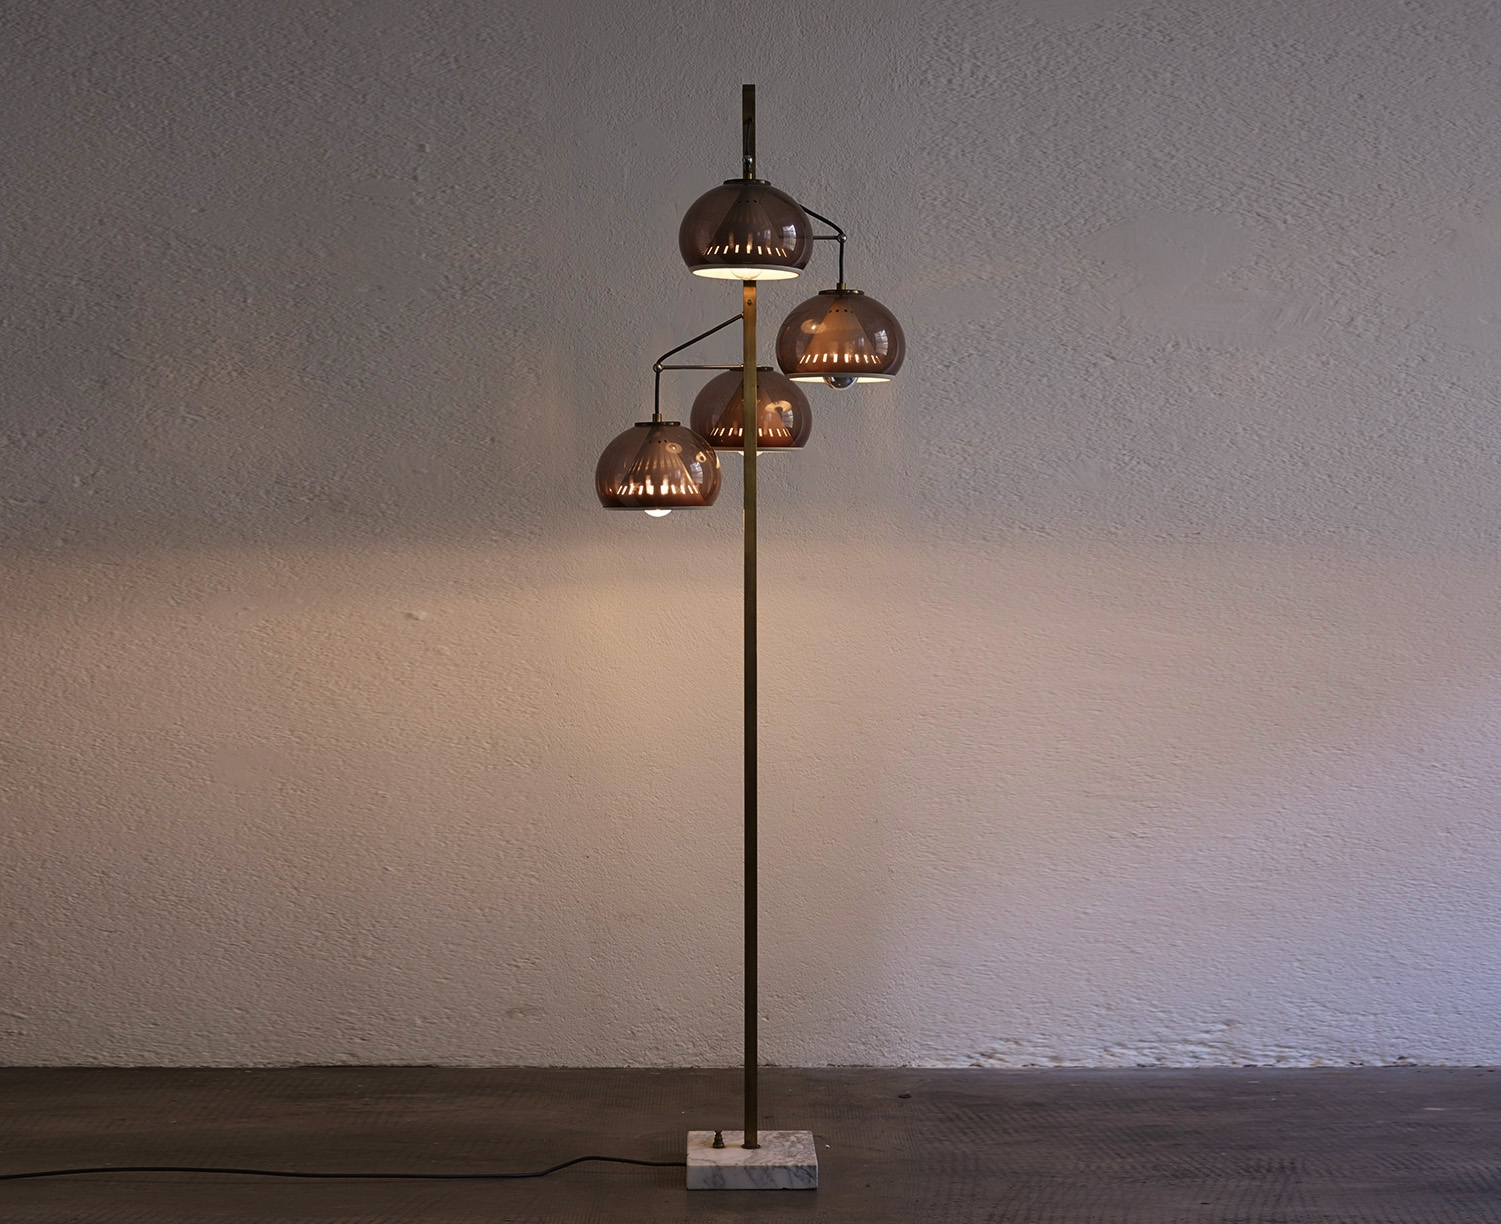 stilux-floor-lamp-image-01